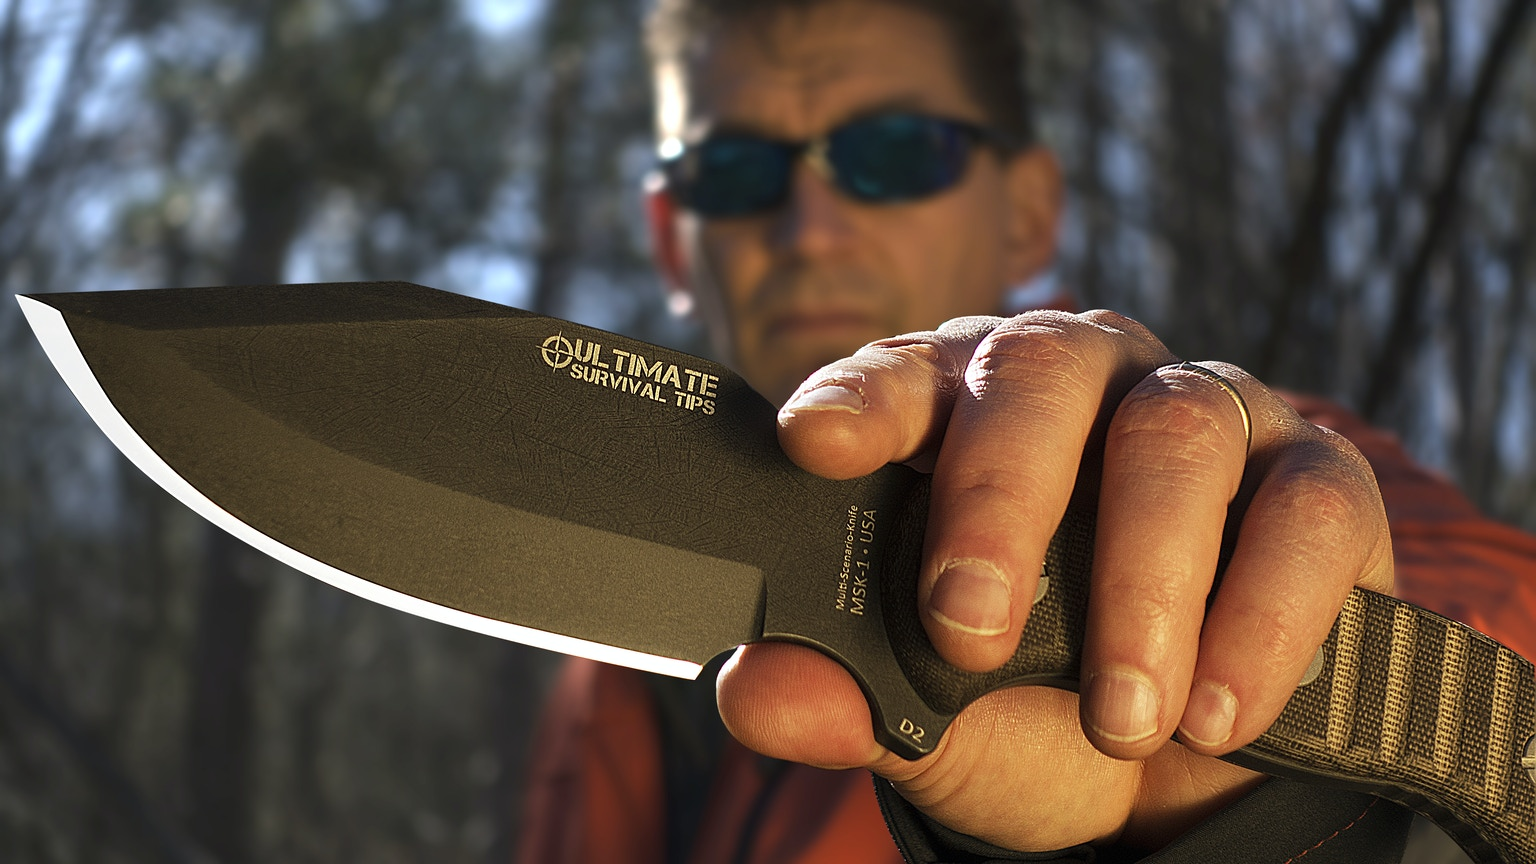 The Ultimate All Purpose Knife That Could Save Your Life